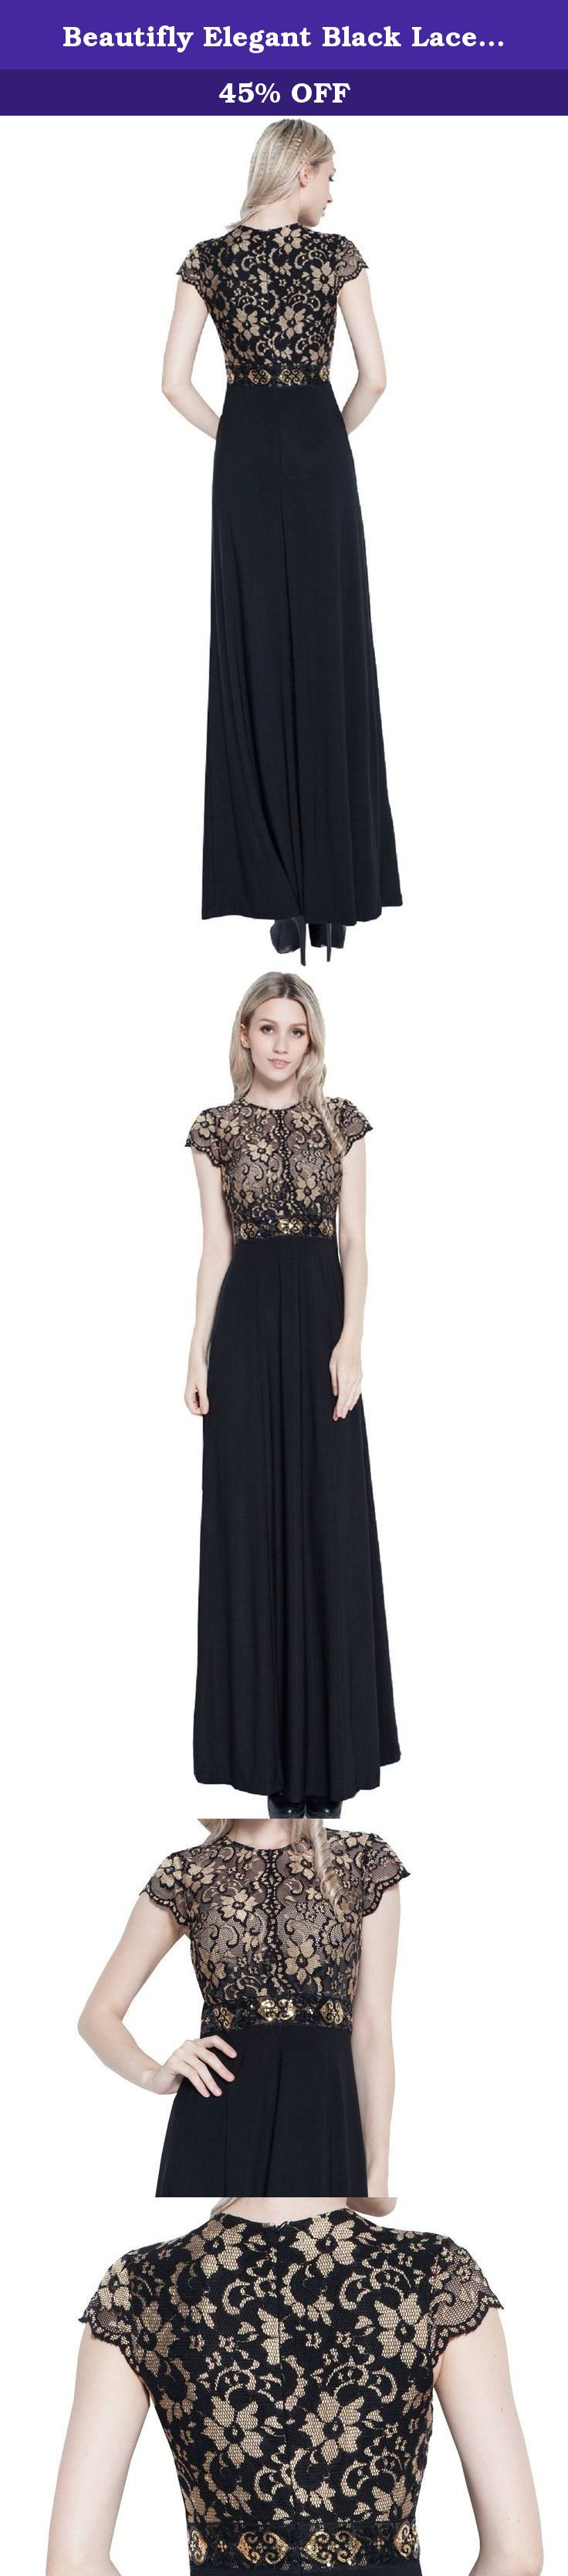 Beautifly elegant black lace mother of the bride ball gown party